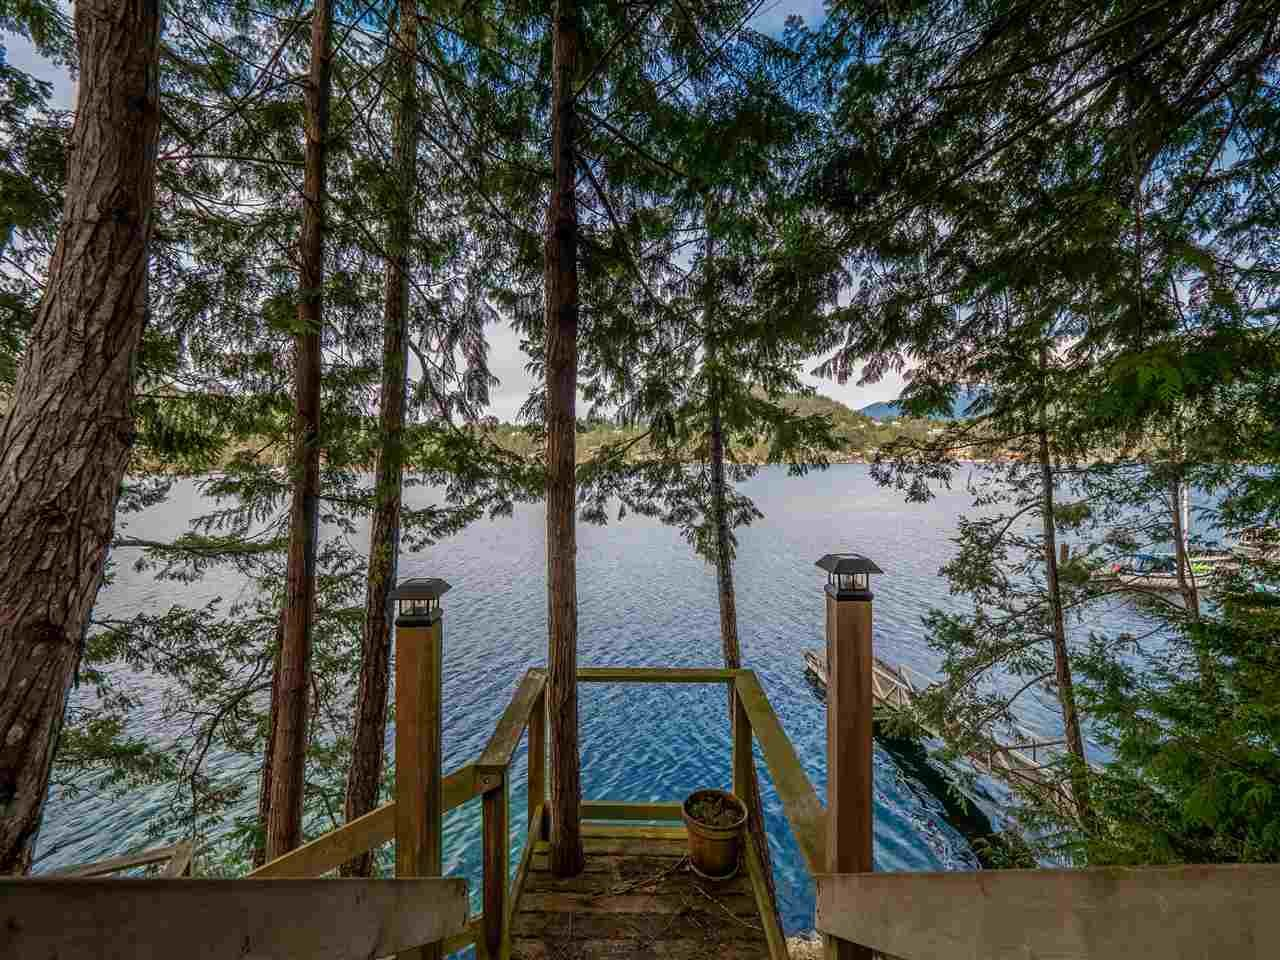 Photo 5: Photos: 4216 FRANCIS PENINSULA Road in Madeira Park: Pender Harbour Egmont House for sale (Sunshine Coast)  : MLS®# R2549311